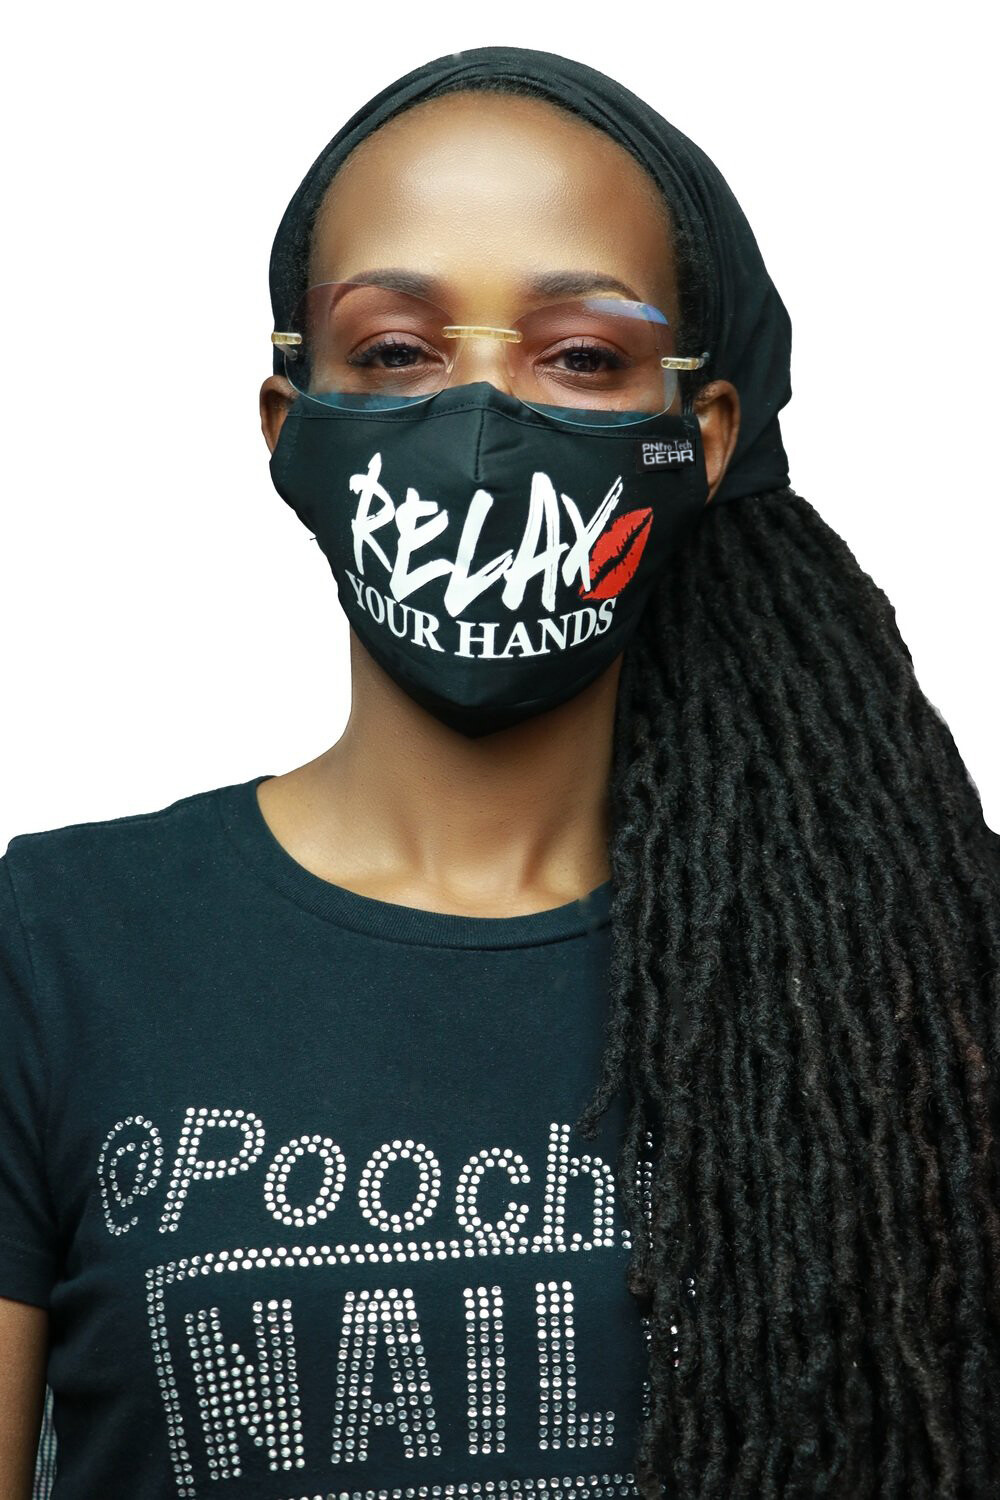 M16-RELAX 1 YOUR HANDS MASK COMES WITH 2 FILTERS